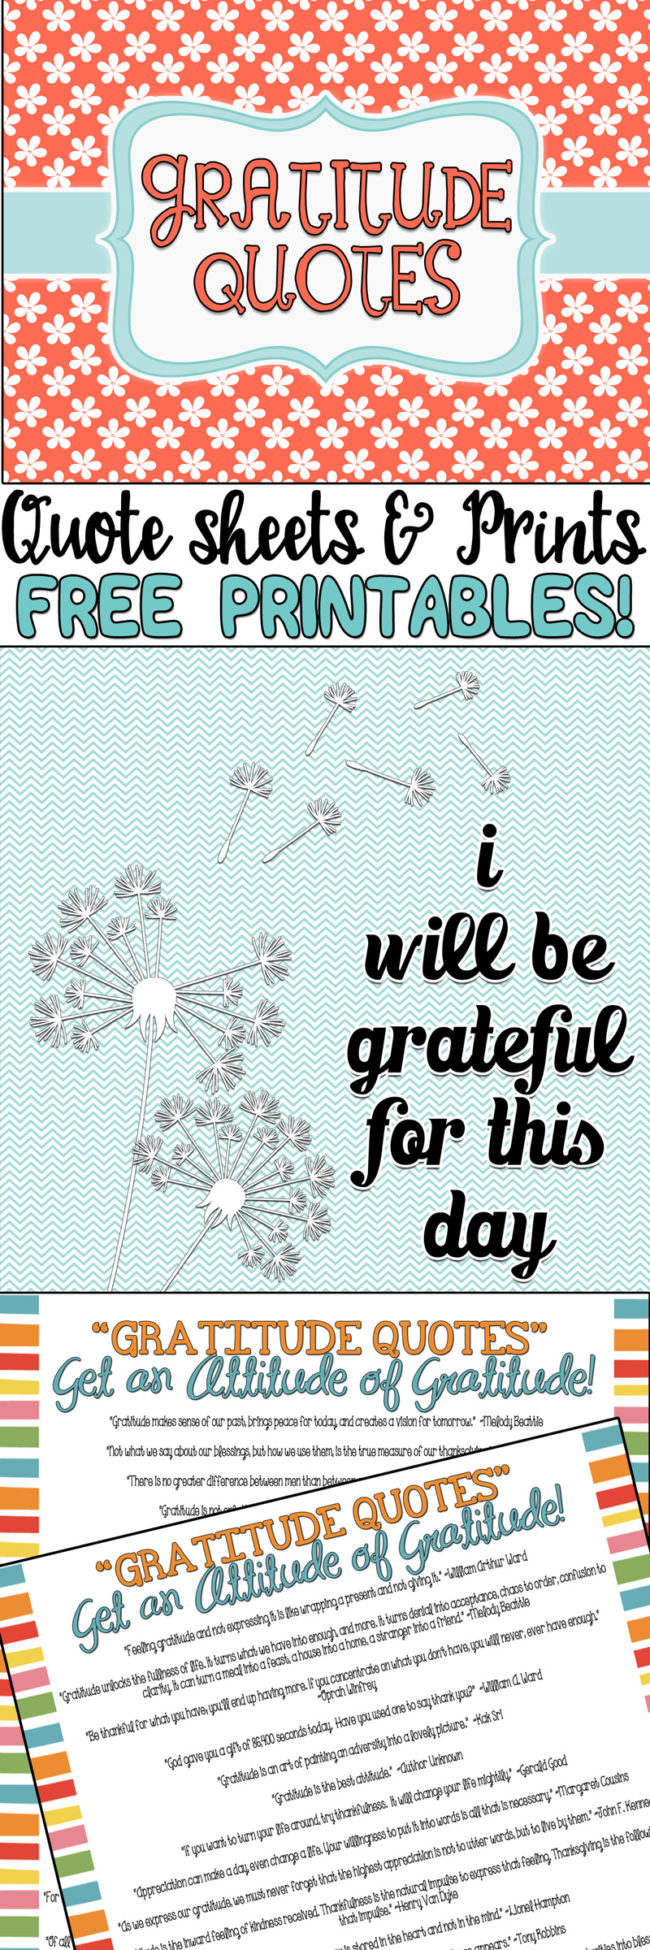 42 fabulous gratitude quotes and many free printables as well at inkhappi.com #gratitudequotes